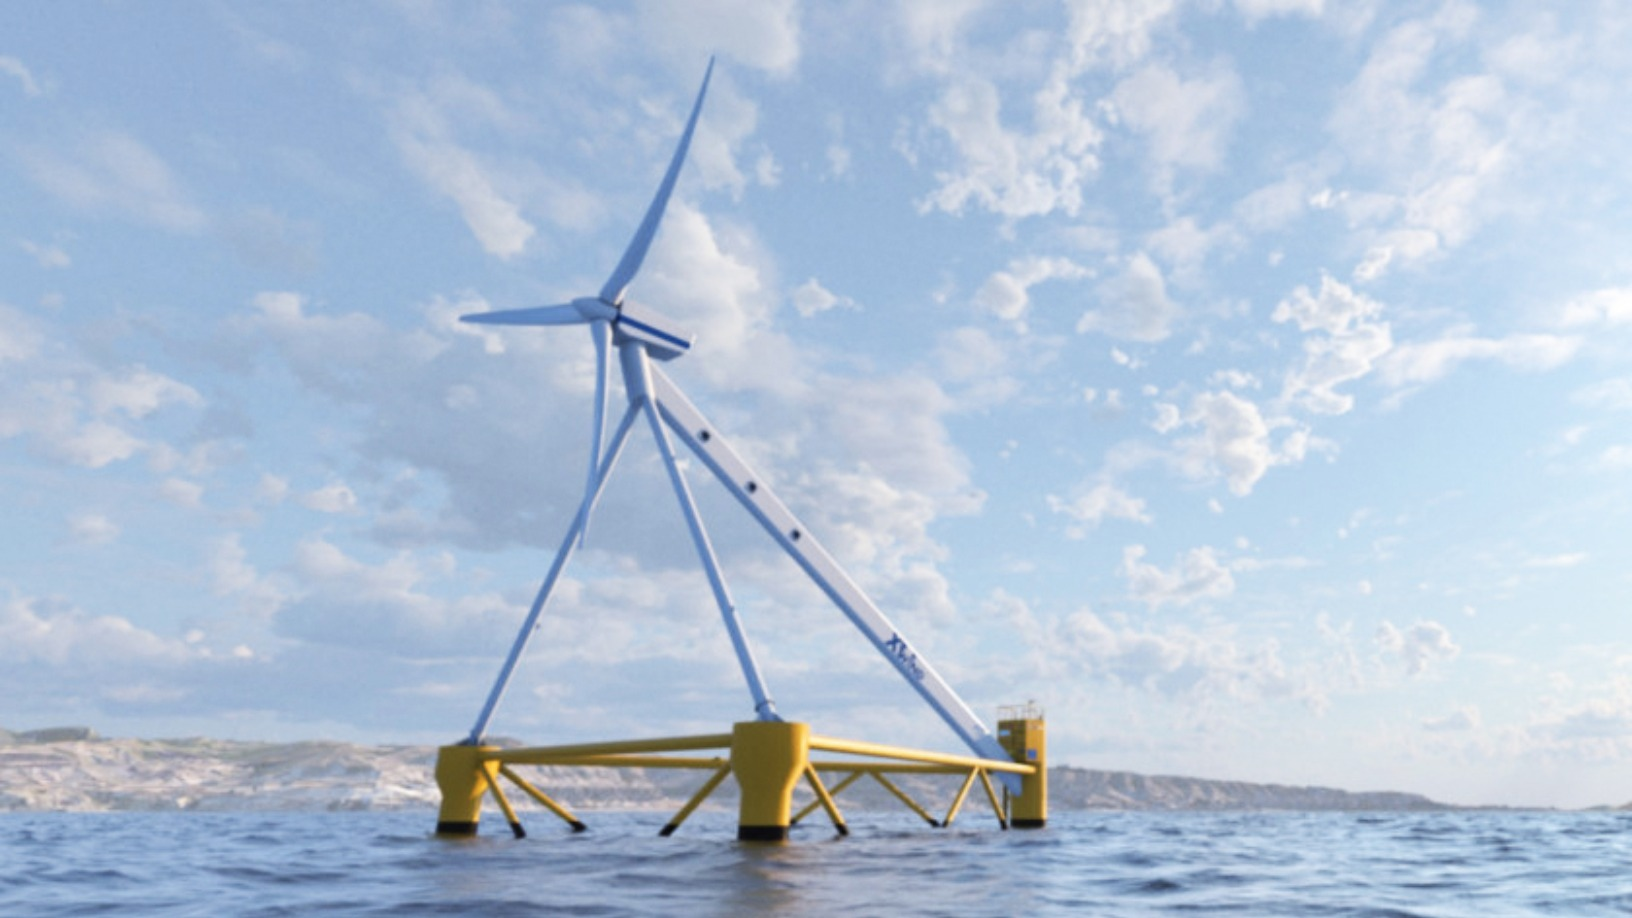 X1 Wind's PivotBuoy: Innovative floating platform to help scale offshore wind energy